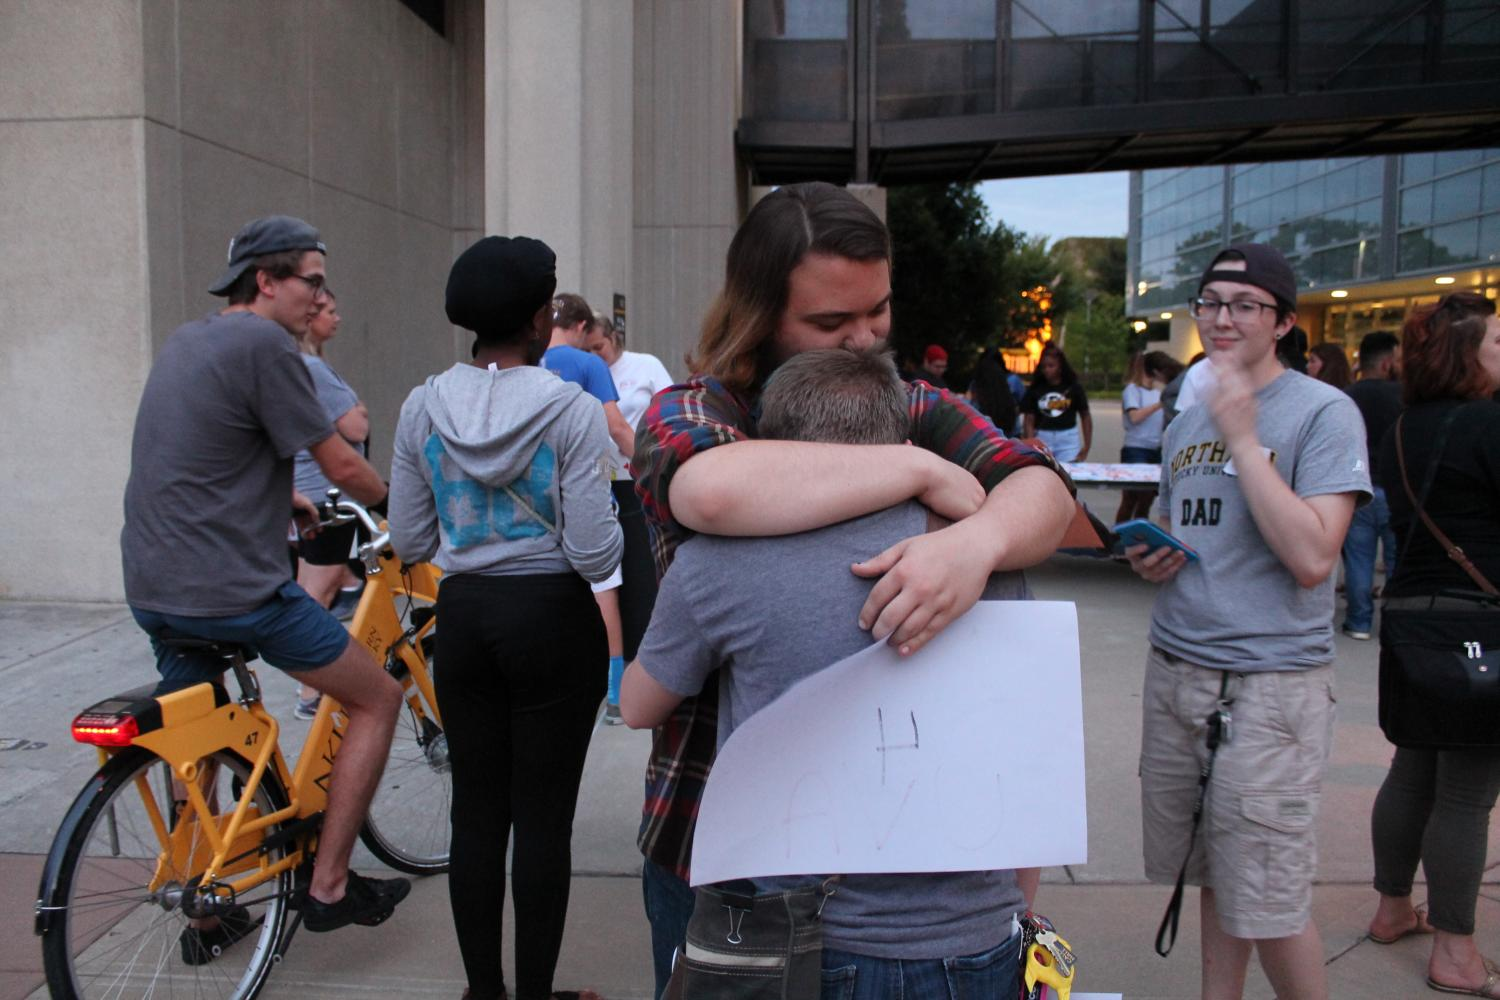 Many attendees hugged one another, speaking words of support. The sign that student Nova Grace holds reads